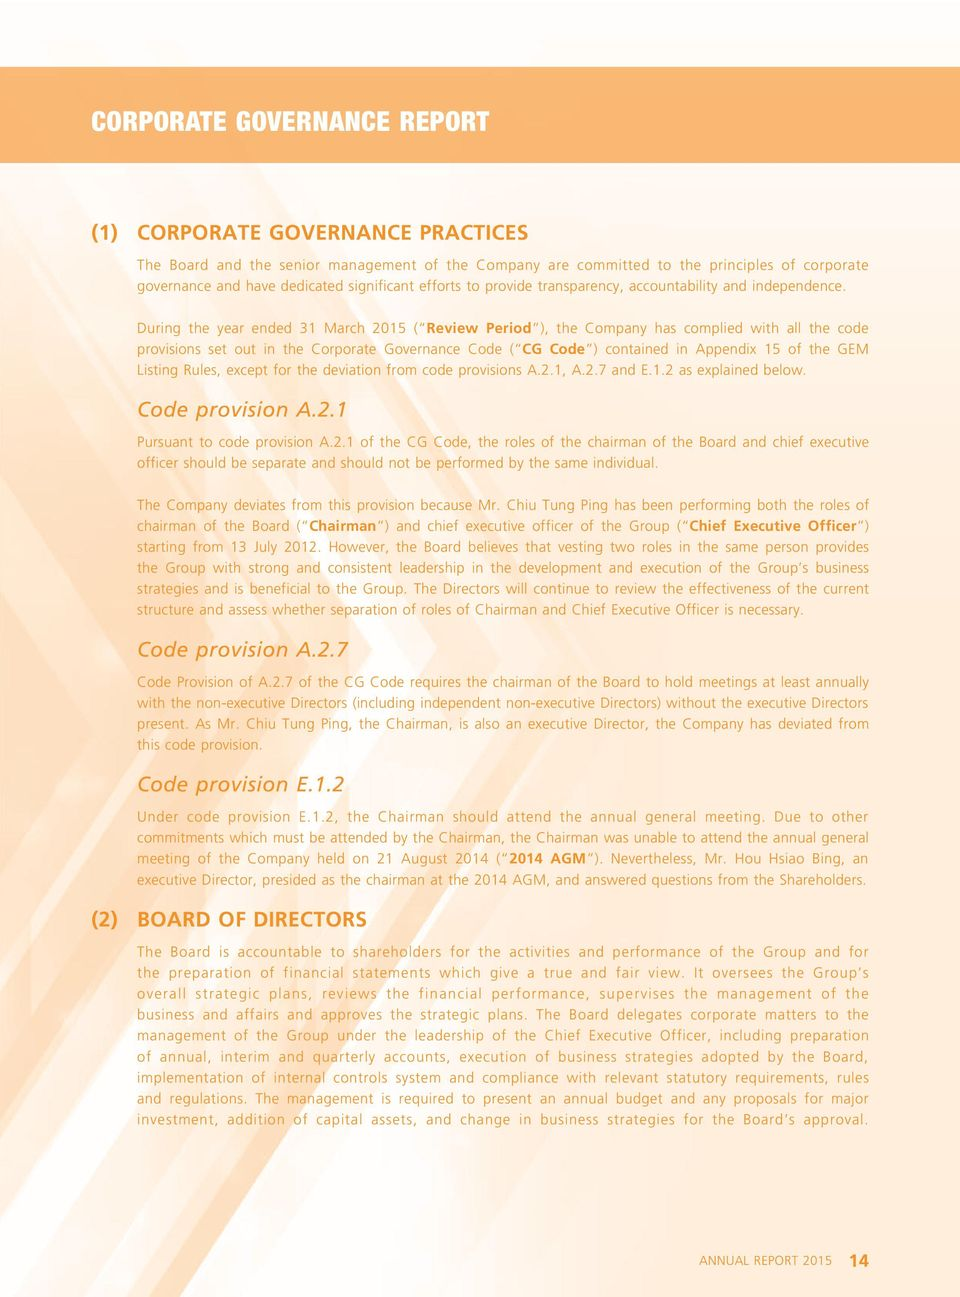 During the year ended 31 March 2015 ( Review Period ), the Company has complied with all the code provisions set out in the Corporate Governance Code ( CG Code ) contained in Appendix 15 of the GEM